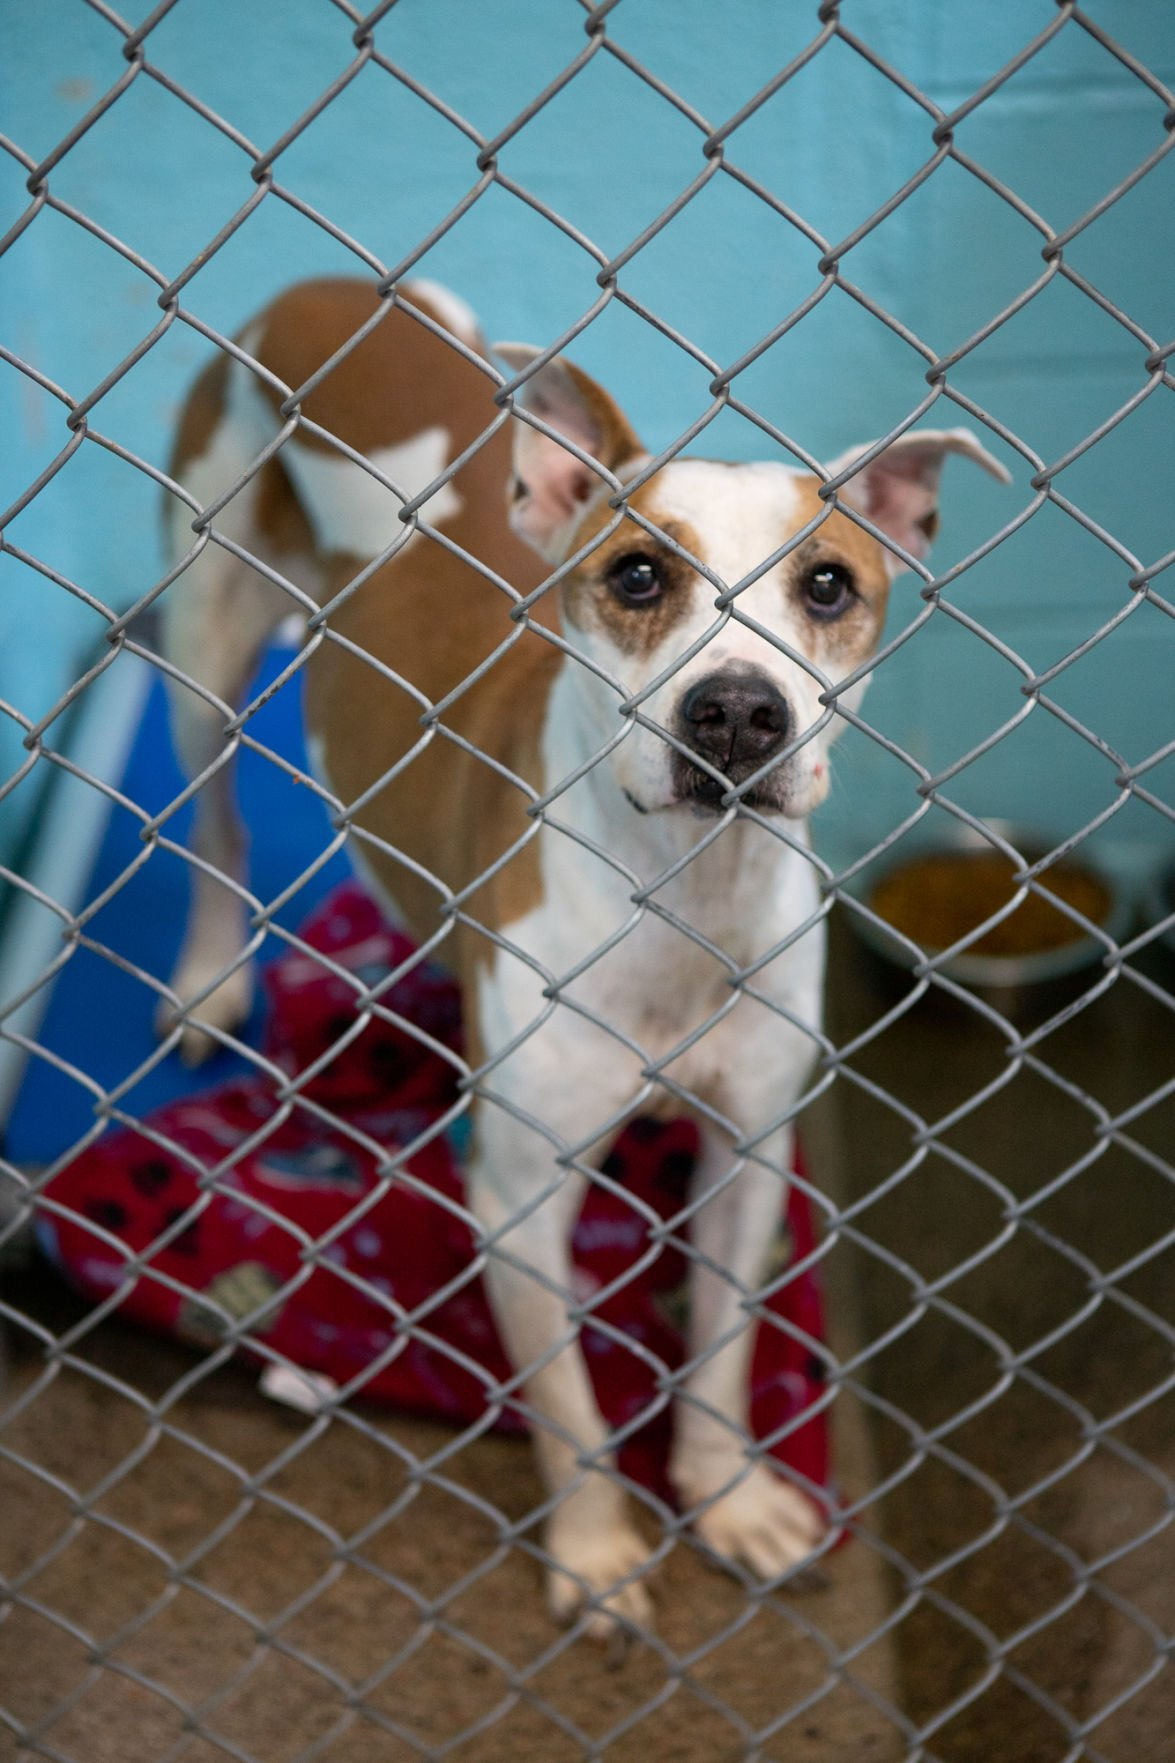 Euthanasia rates dropping in animal shelters